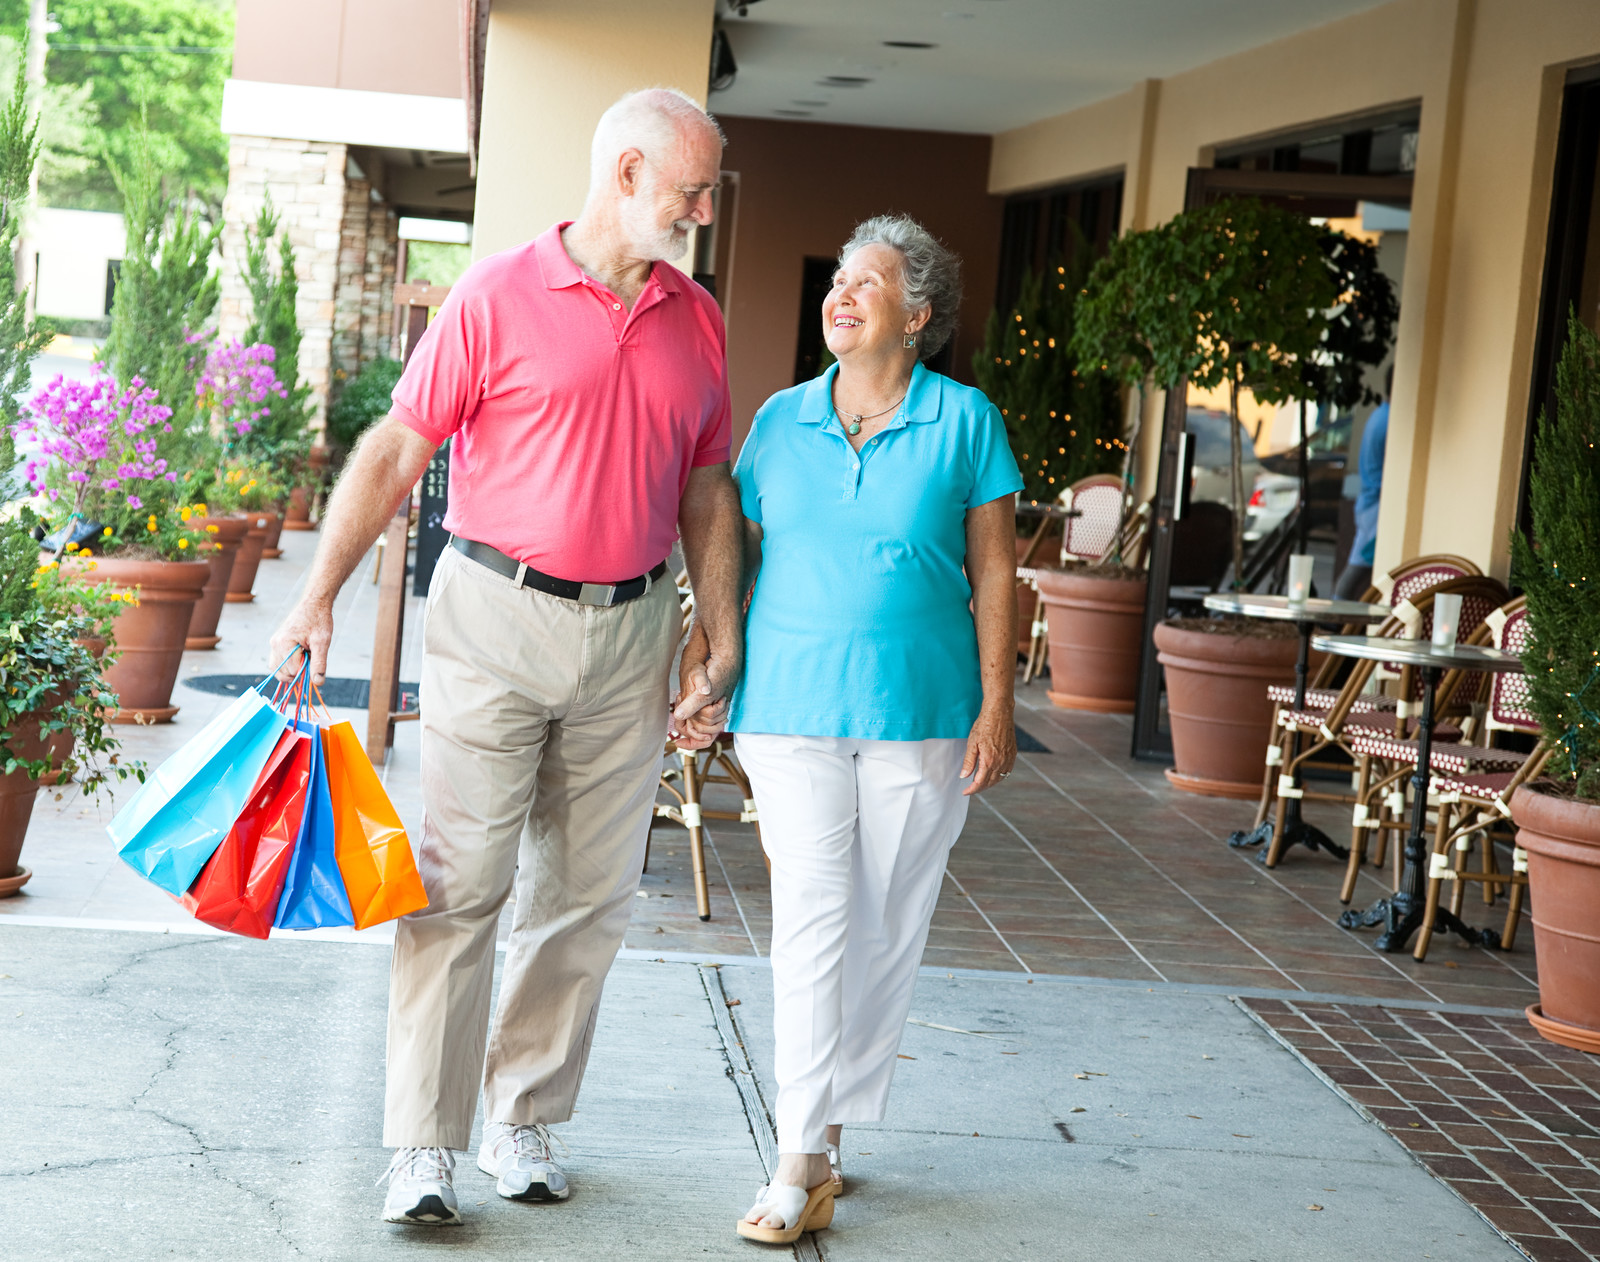 Shopping Discounts for Seniors-Senior Couple holding hands smiling at an Outdoor Shopping Mall.  The man is holding four colorful bags and the sidewalk is lined with potted flowers